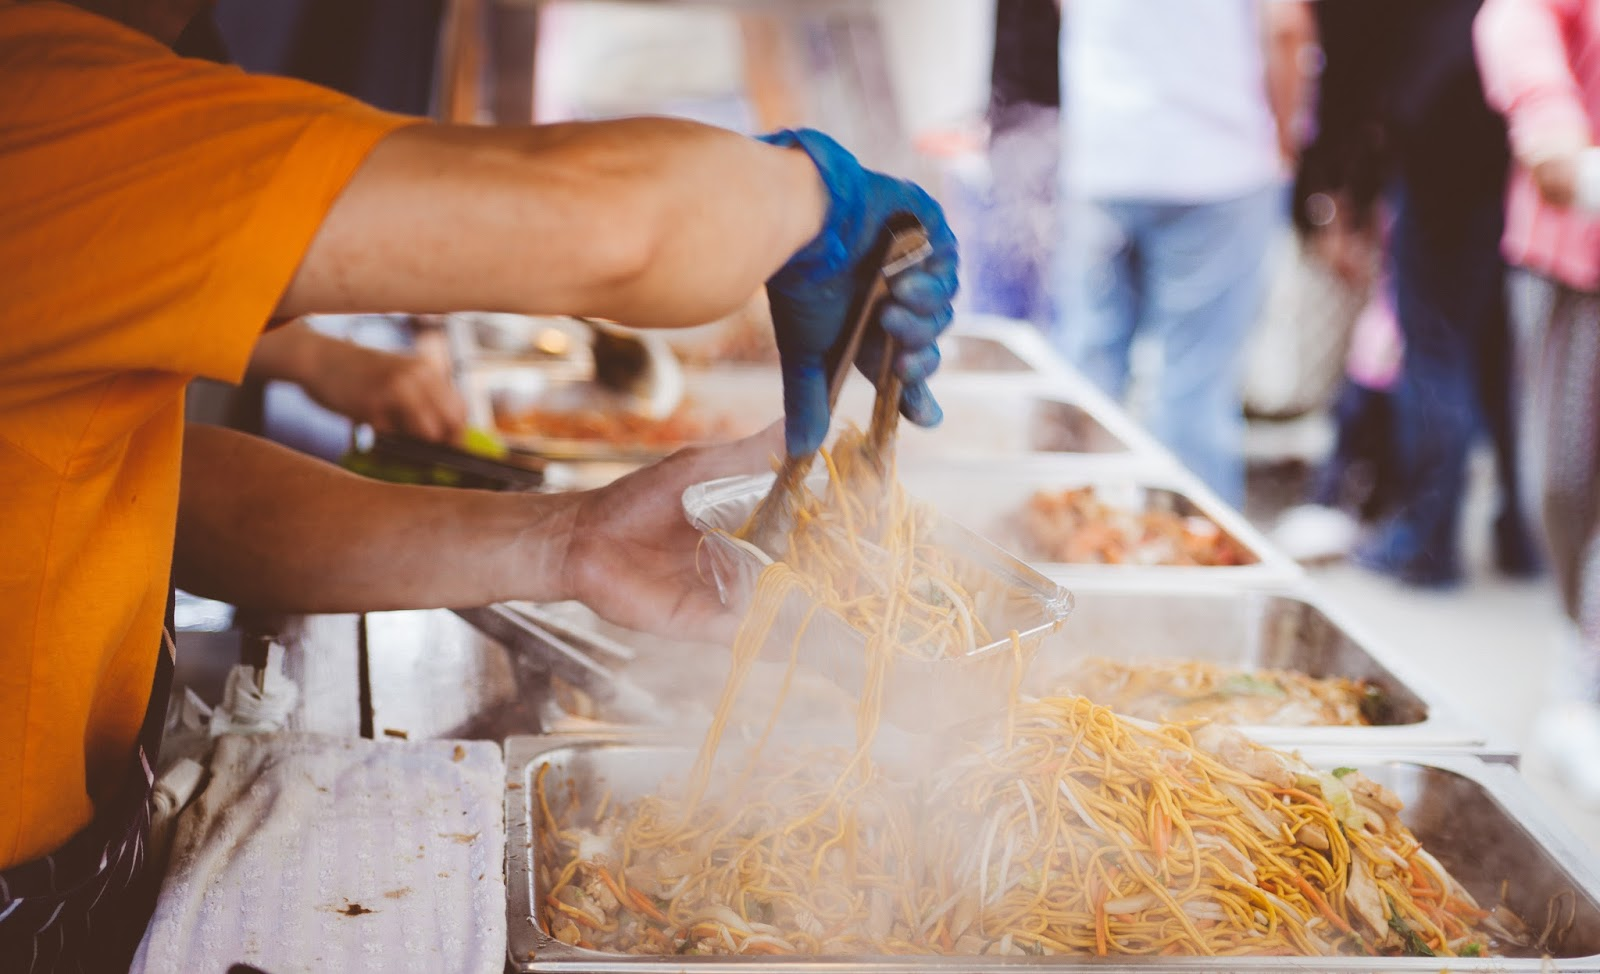 Great street food ideas for food trucks this year nisbets great street food ideas for food trucks this year forumfinder Choice Image